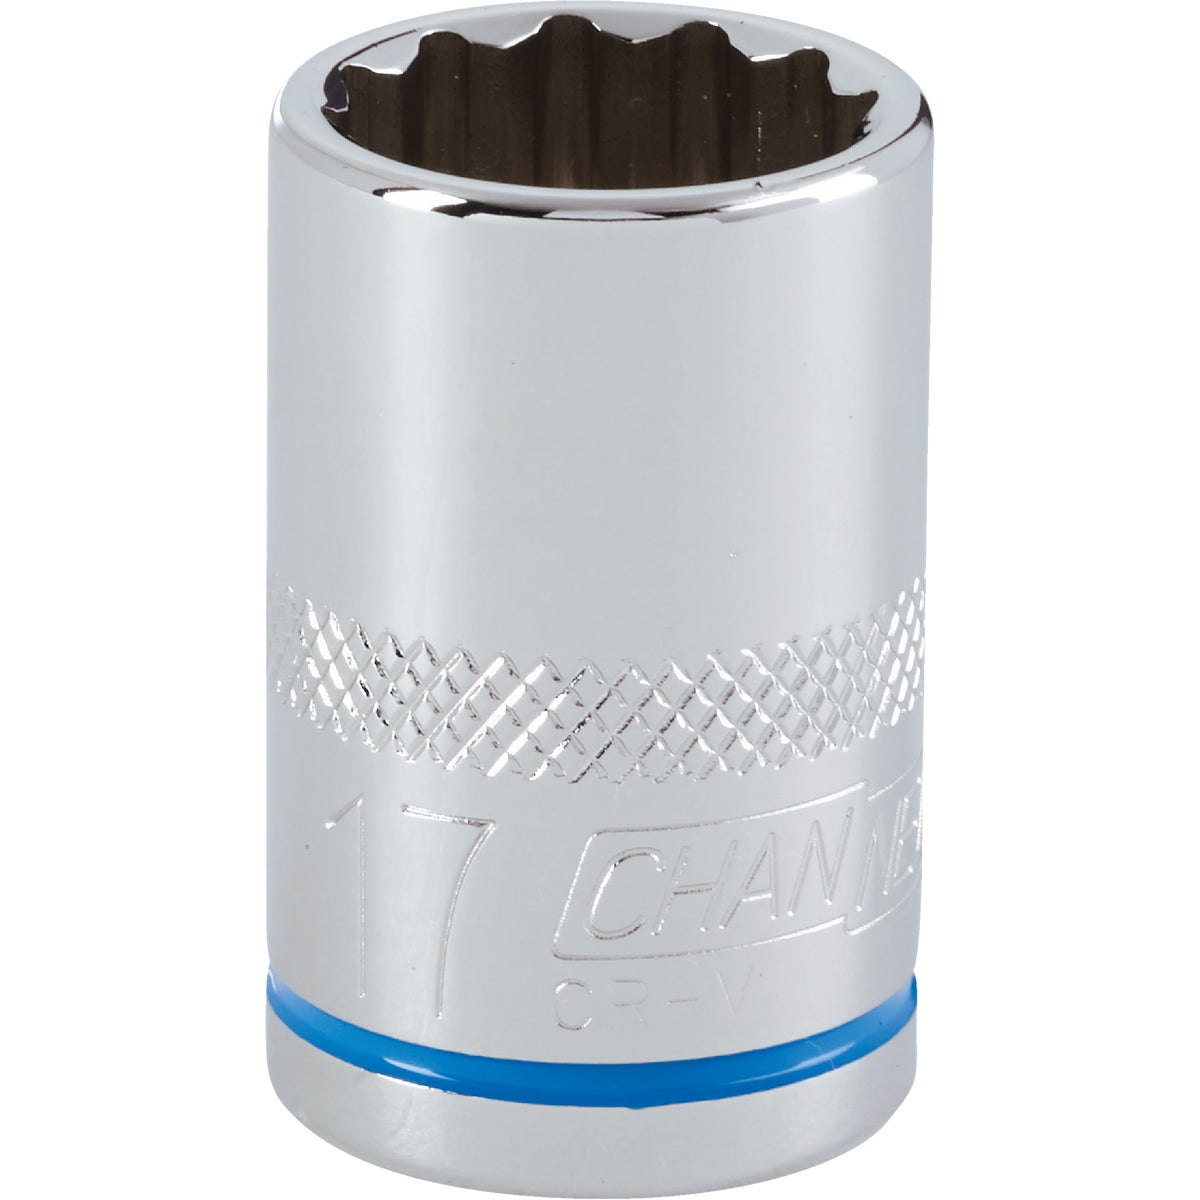 17MM 1/2 DRIVE SOCKET - 397679 by Do it Best